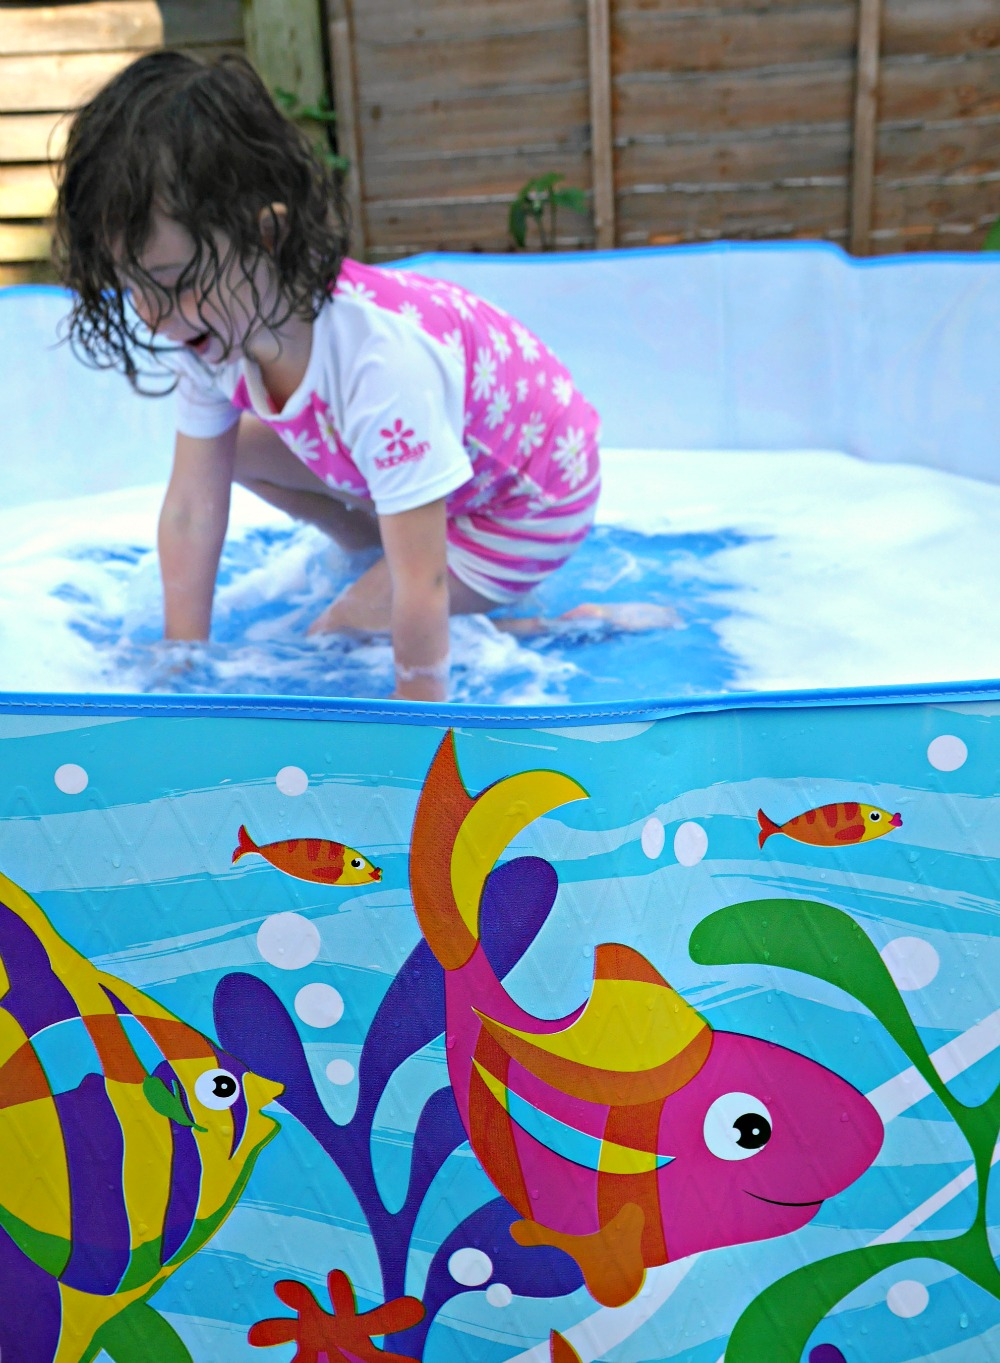 Amazon paddling pool from the #NowItsSummer store